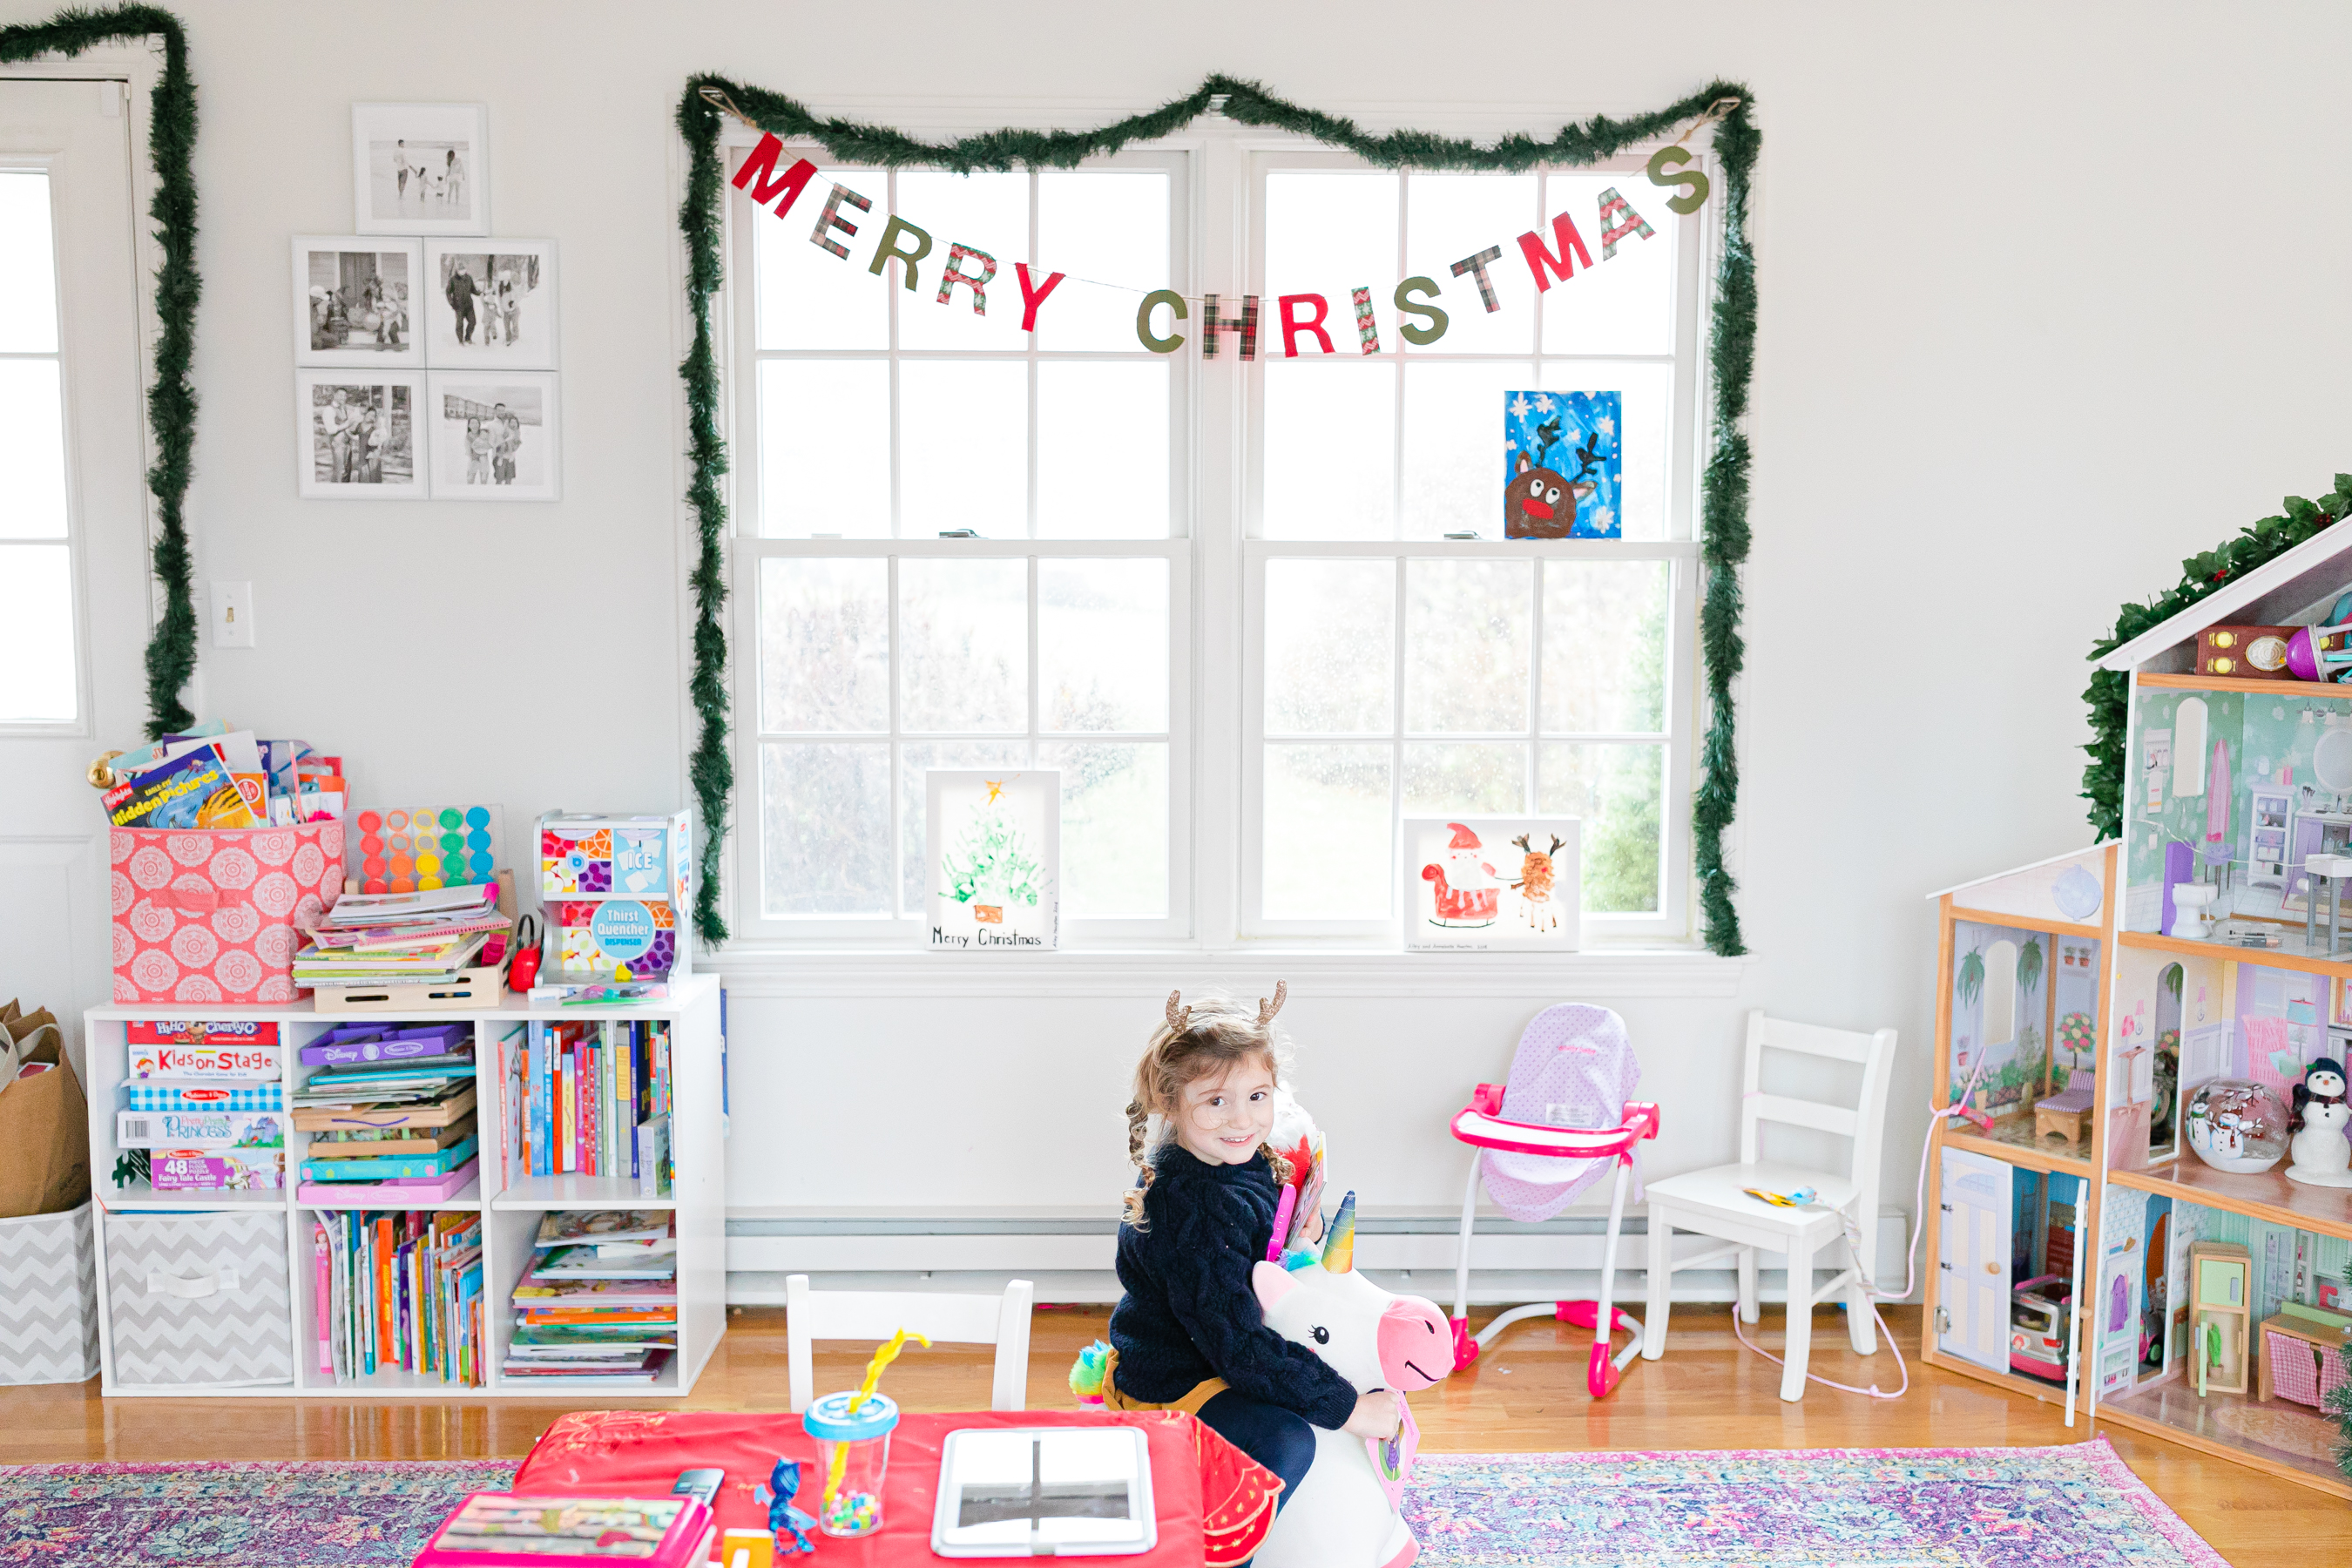 little girl in playroom decorated for Christmas